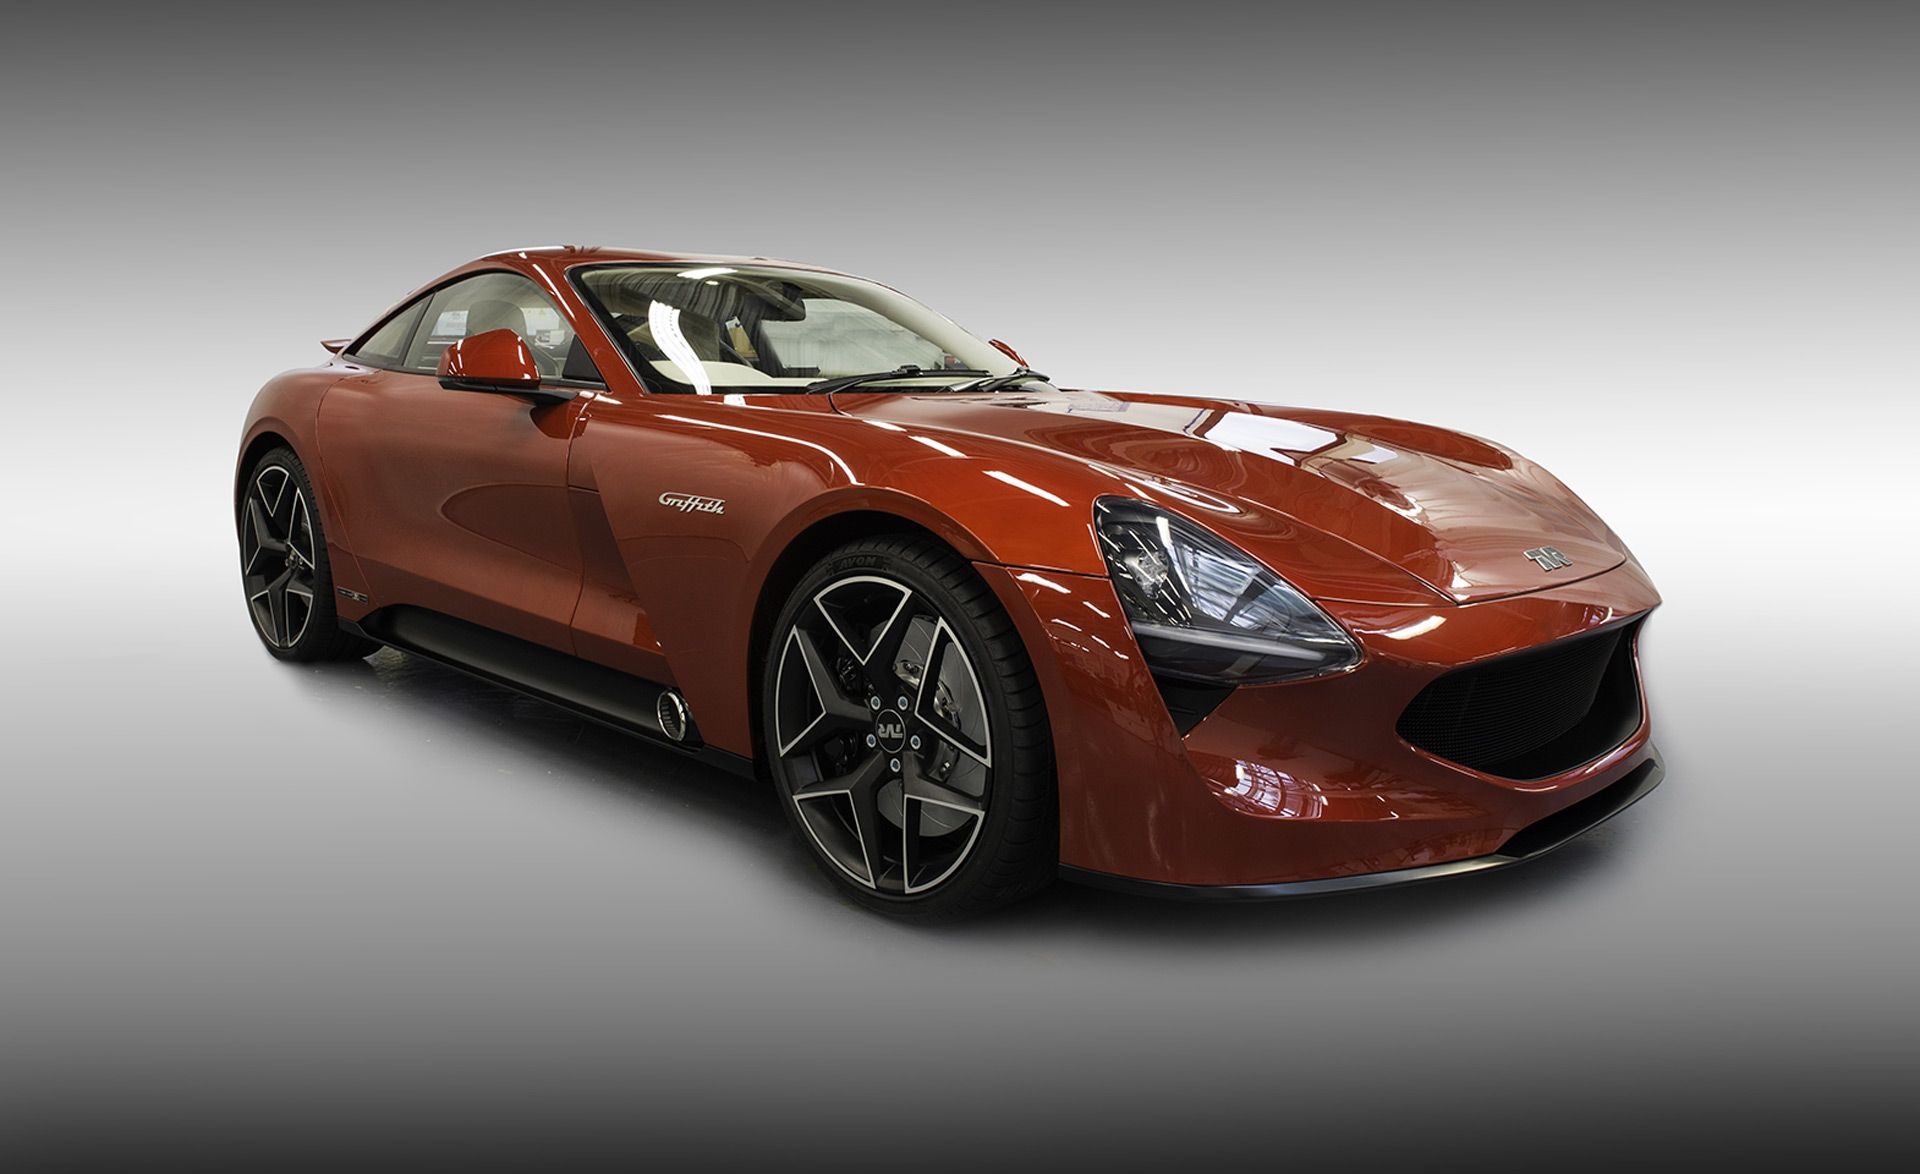 Dormant British Brand TVR, Famous For Its Fearsome Sports Cars Such As The  Sagaris And Typhon, Has Been Revived And Has Just Revealed A New Car.